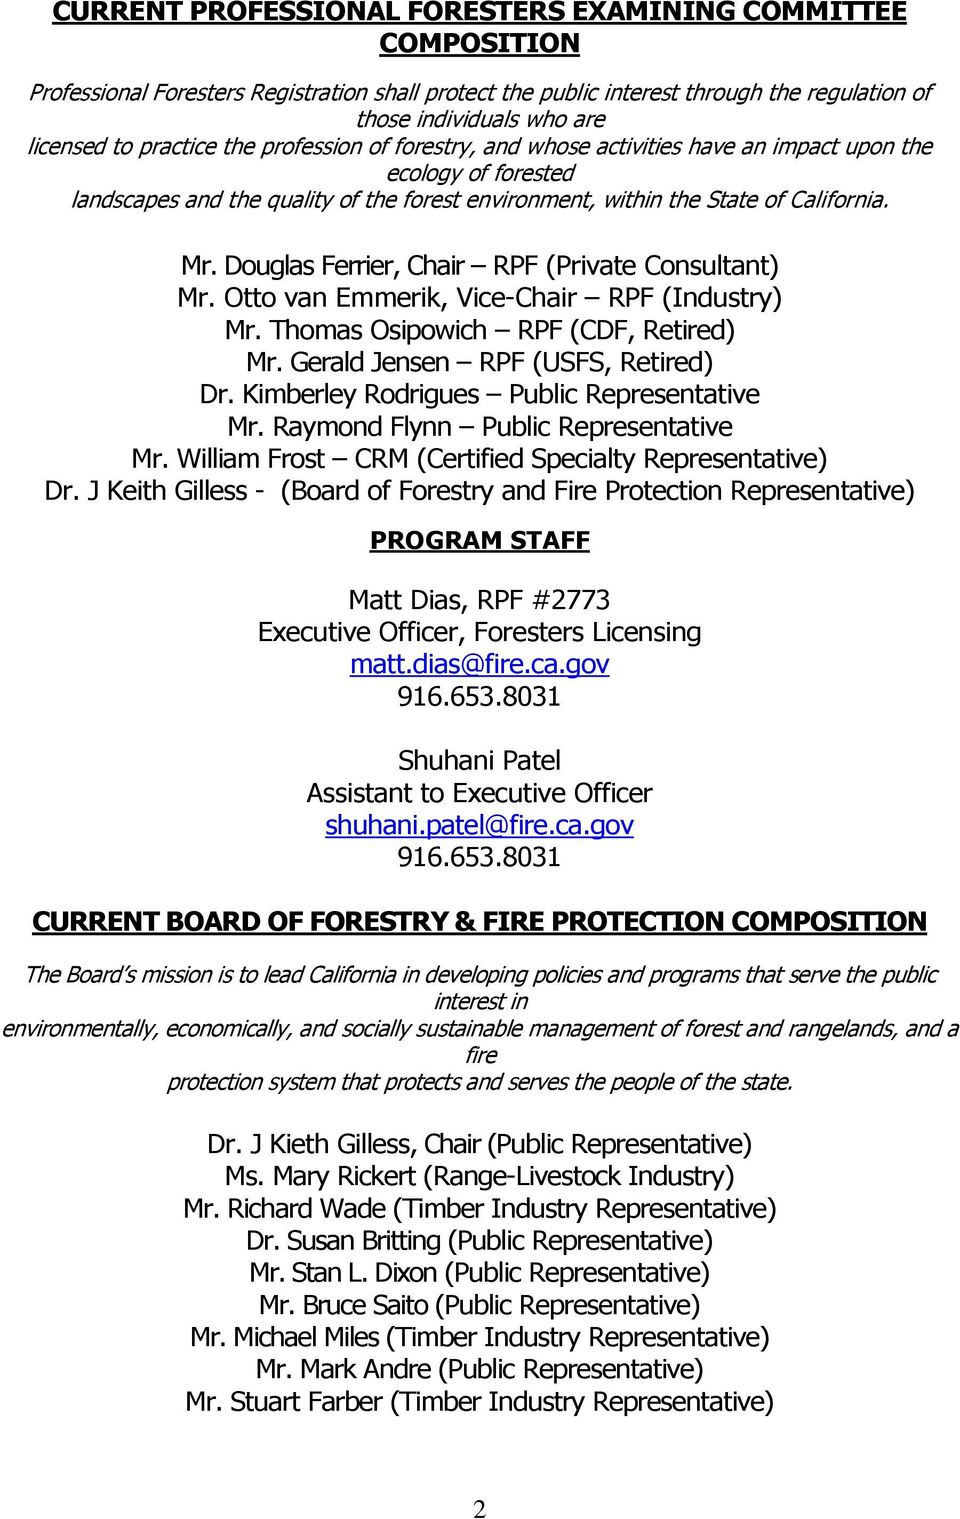 Board of Forestry and Fire Protection Professional Foresters